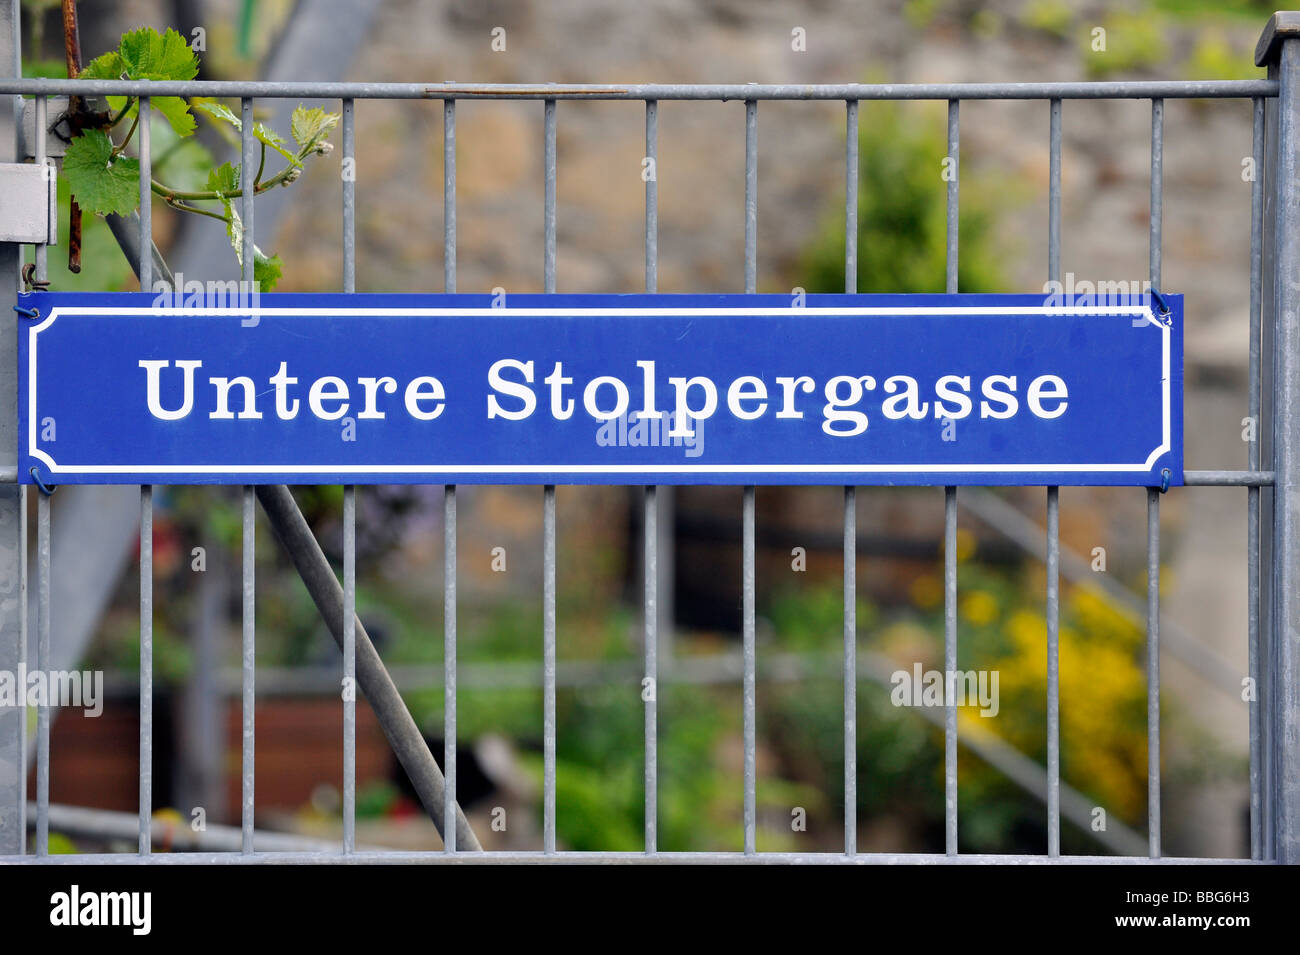 Street sign, Untere Stolpergasse, Marbach am Neckar, Baden-Wuerttemberg, Germany, Europe - Stock Image